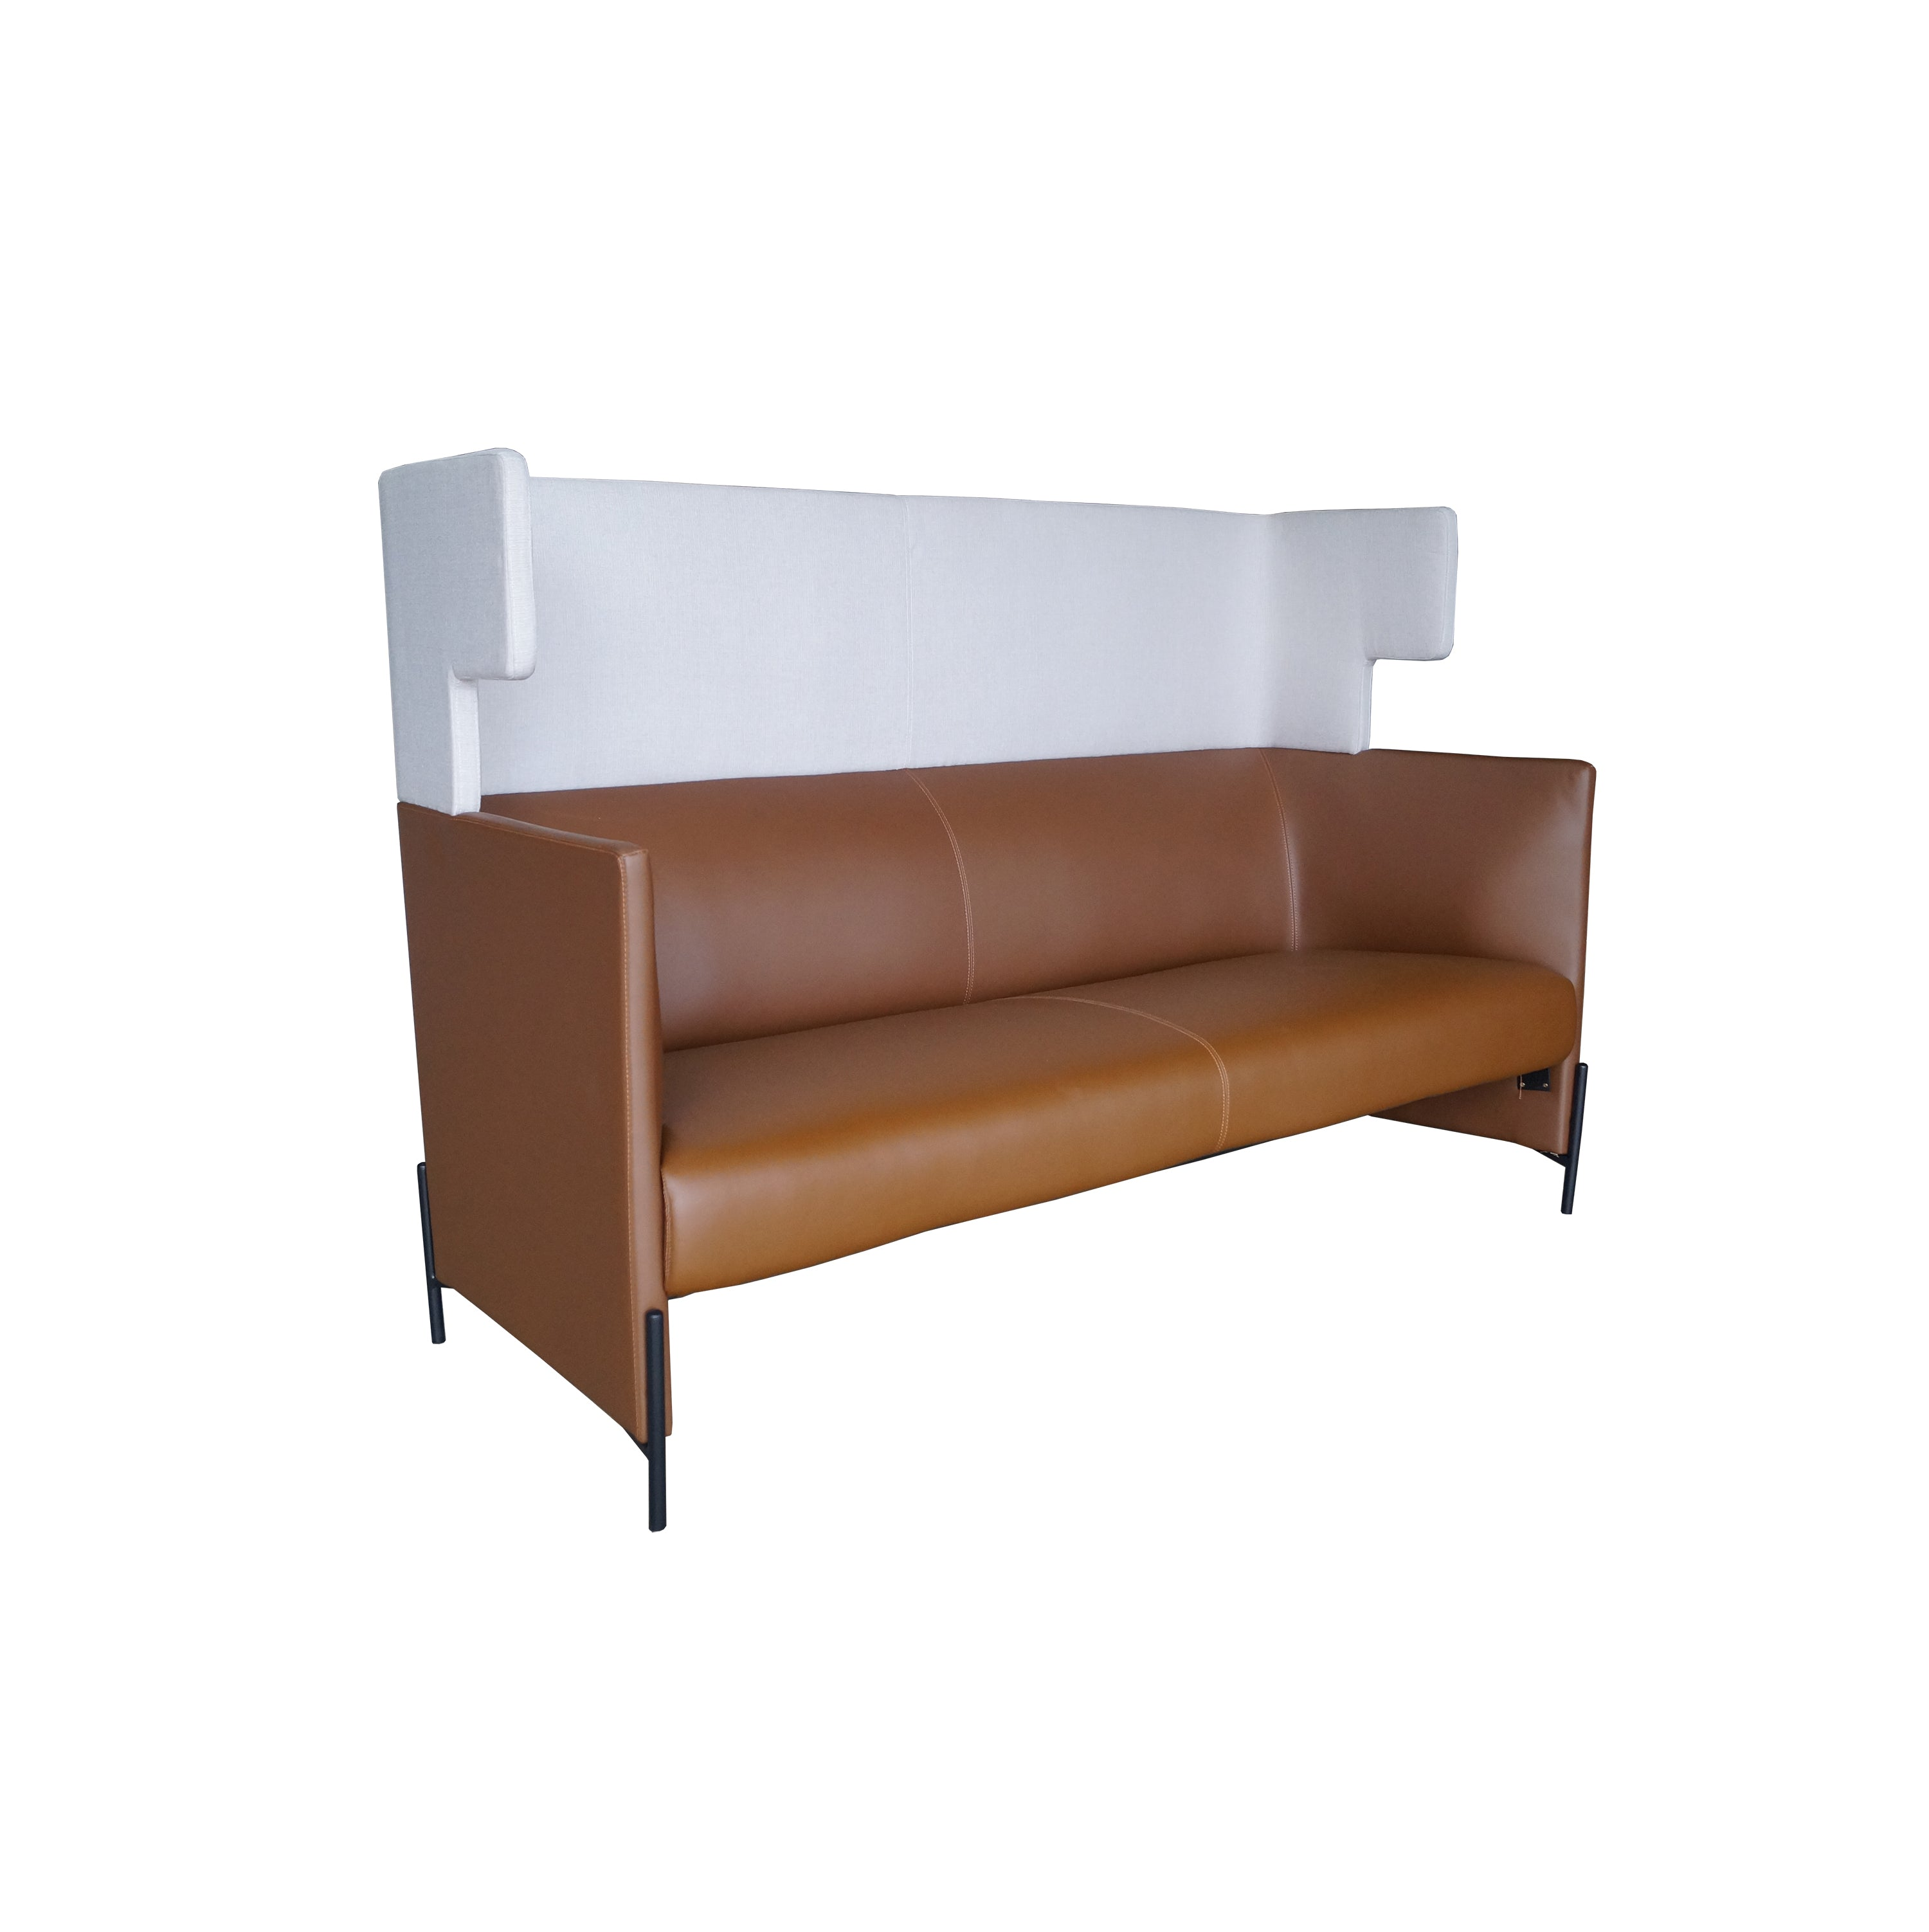 PAI CONCERTO THREE SEATER HIGH BACK SOFA – OFX office